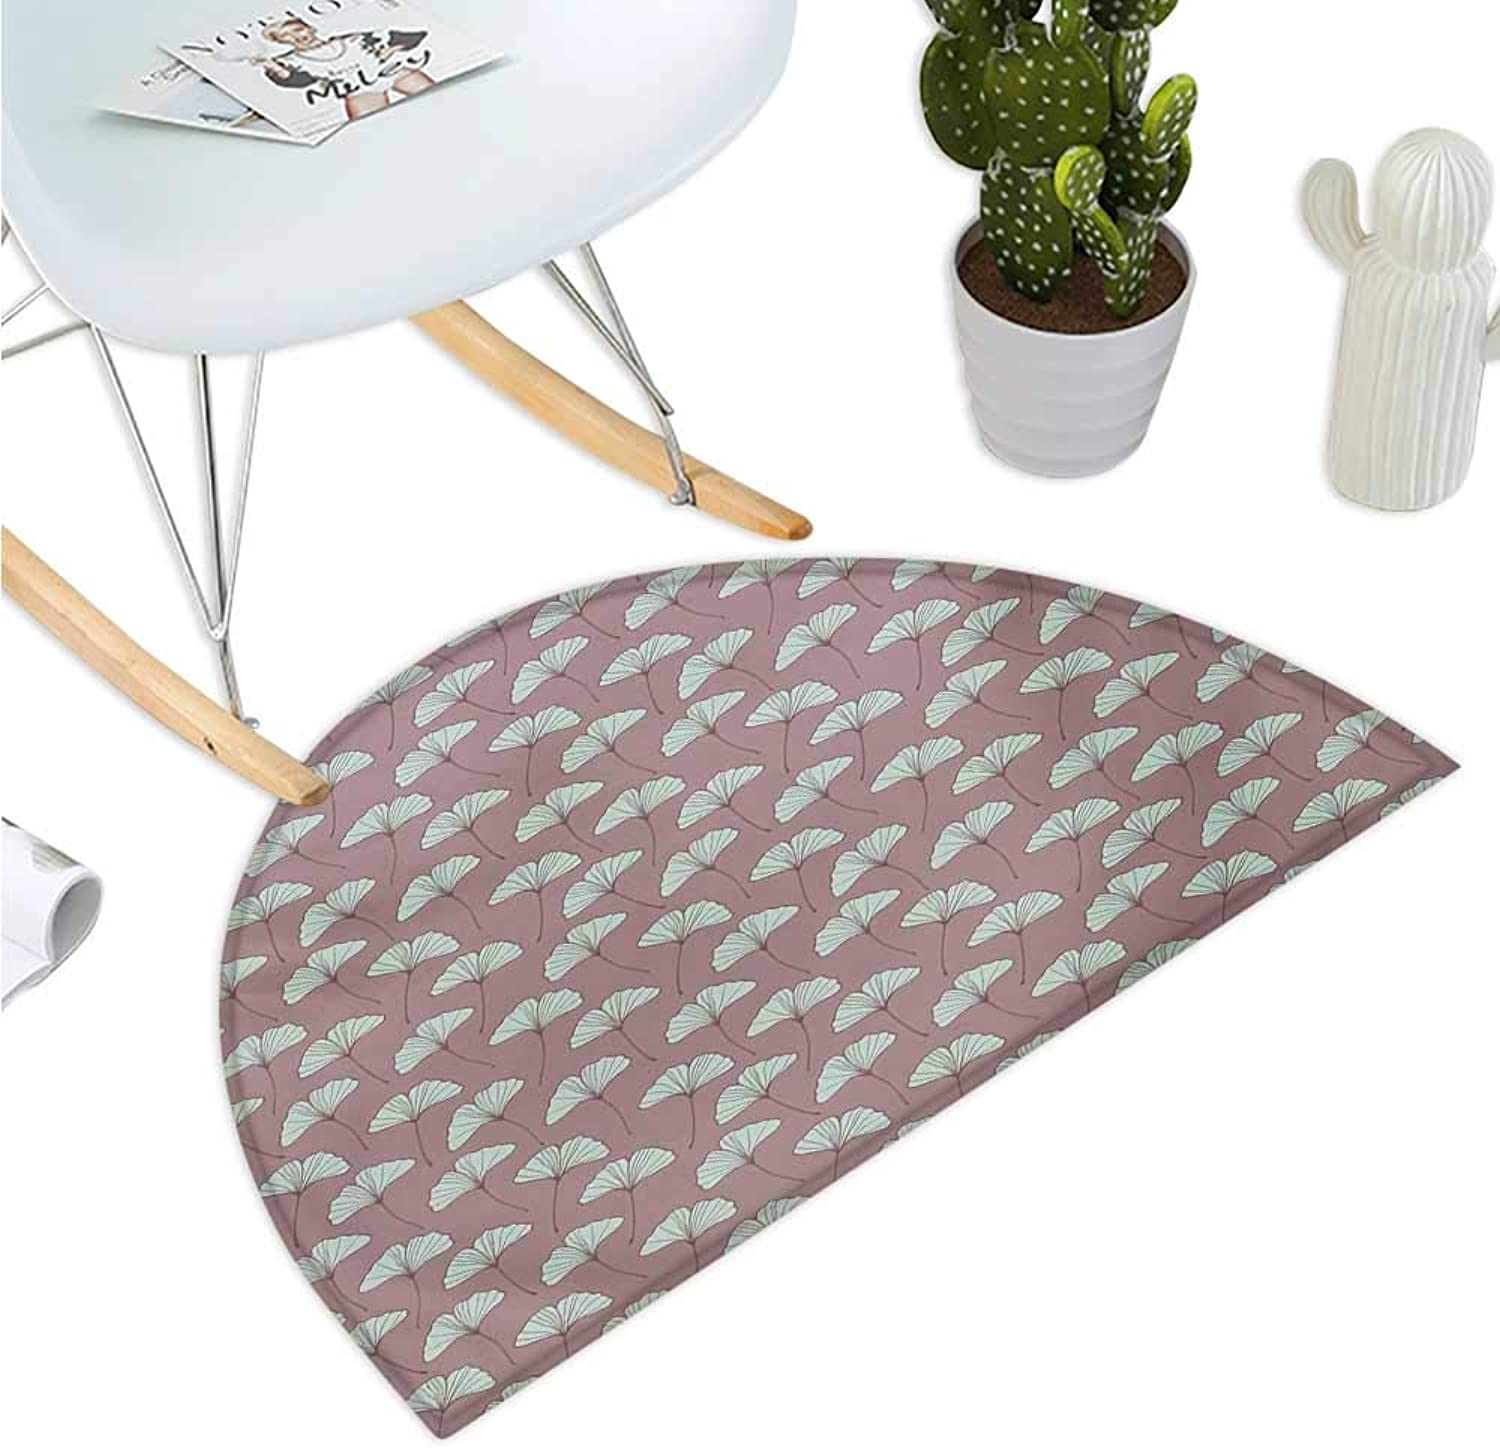 Botanical Semicircular Cushion Ginkgo Leaves Pattern with Retro Effect Garden Rural Field Flowers Entry Door Mat H 47.2  xD 70.8  Mauve Taupe and Pale Mint